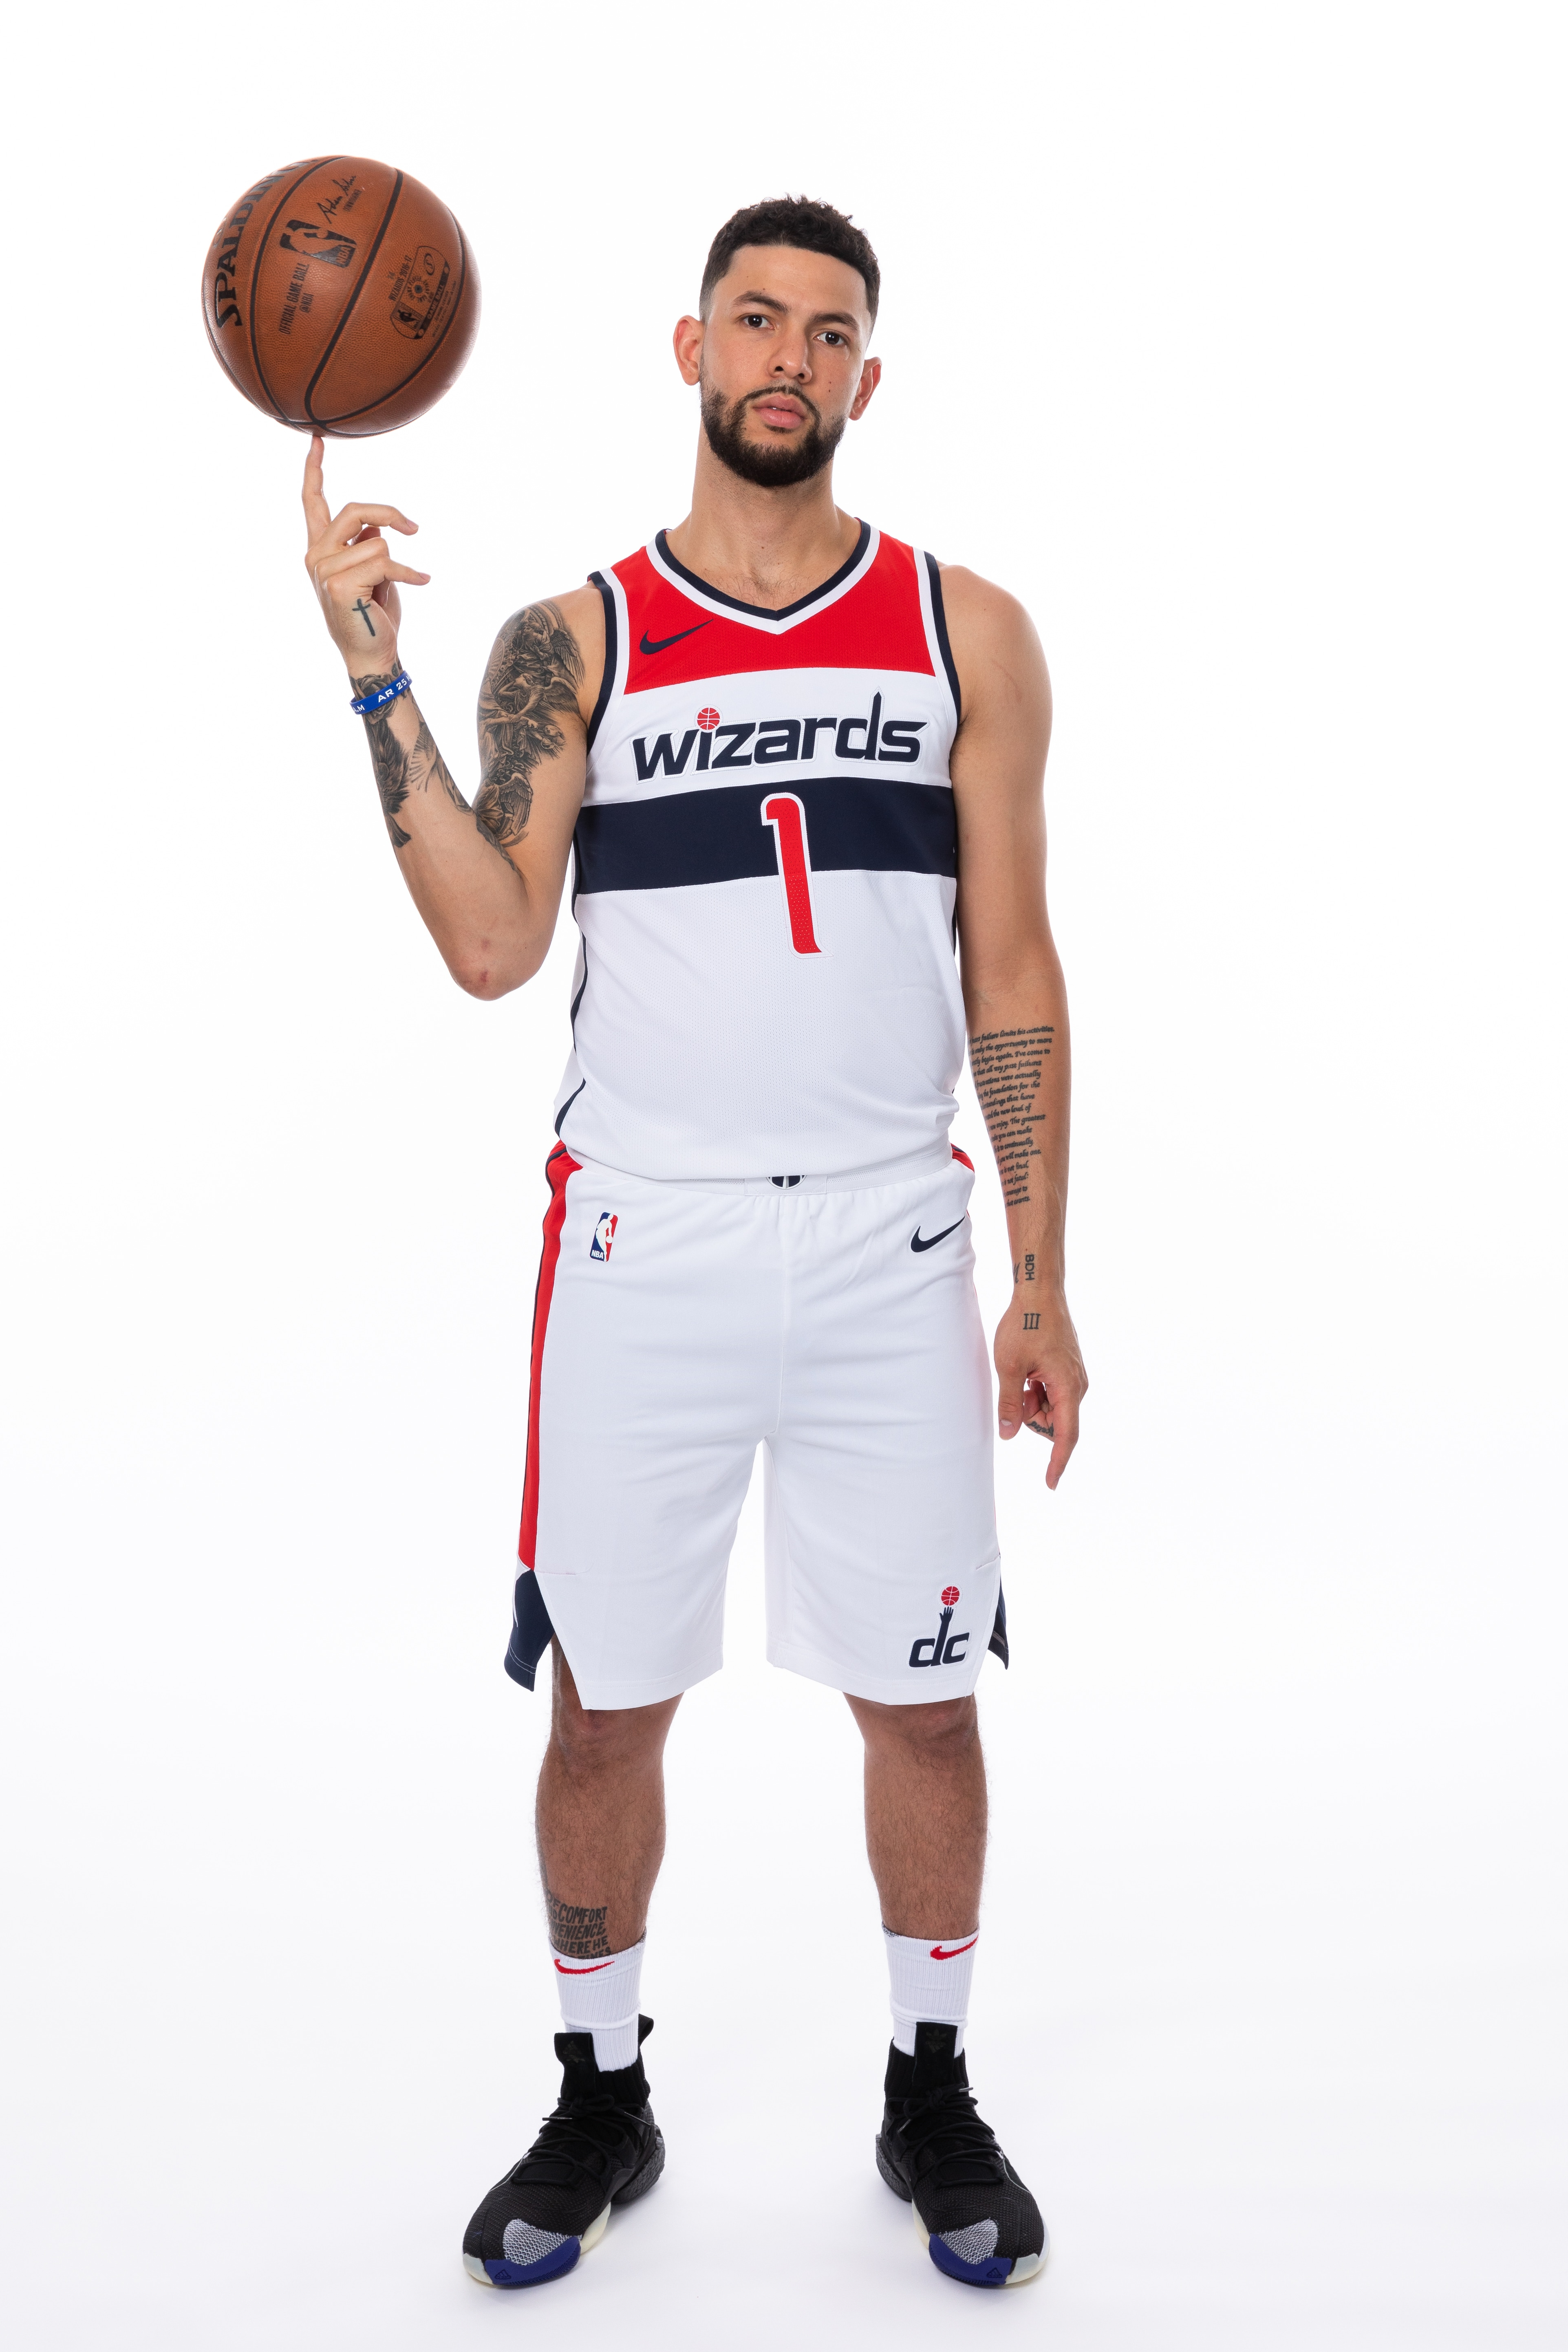 b4f31944043 Austin Rivers Introduced in D.C. - 7 2 18. July 2